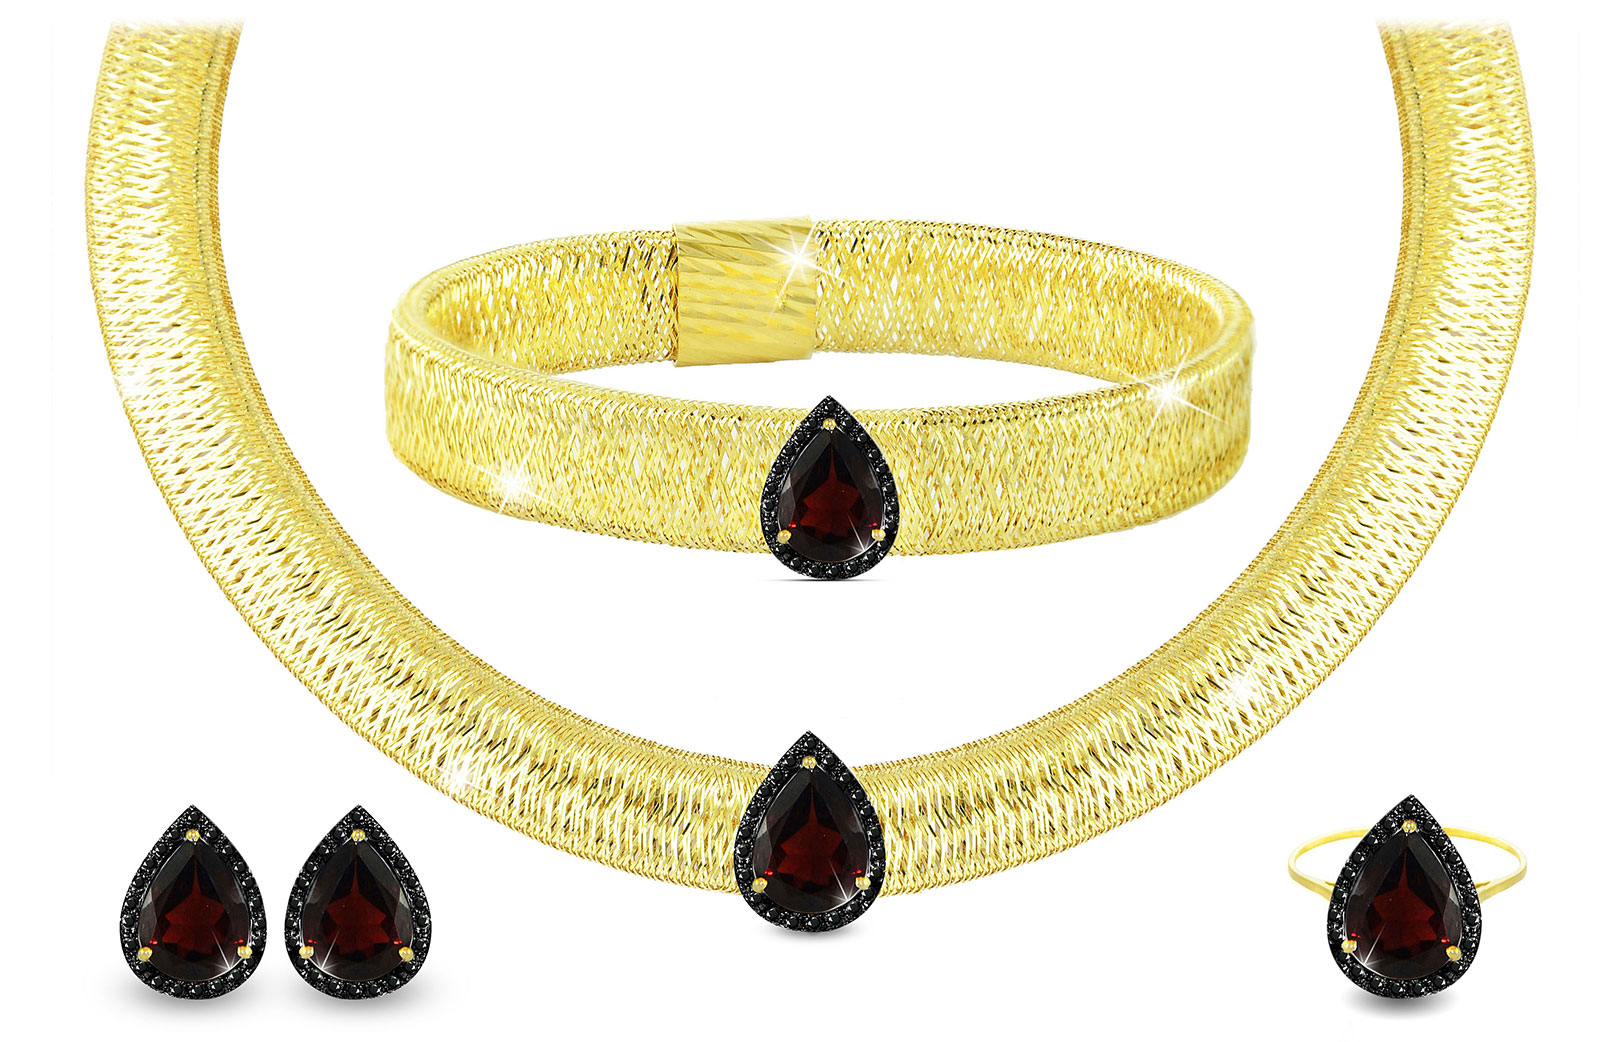 Vera Perla 18K Gold 0.60ct Black Diamonds, Garnet Jewelry Set - 4 pcs.